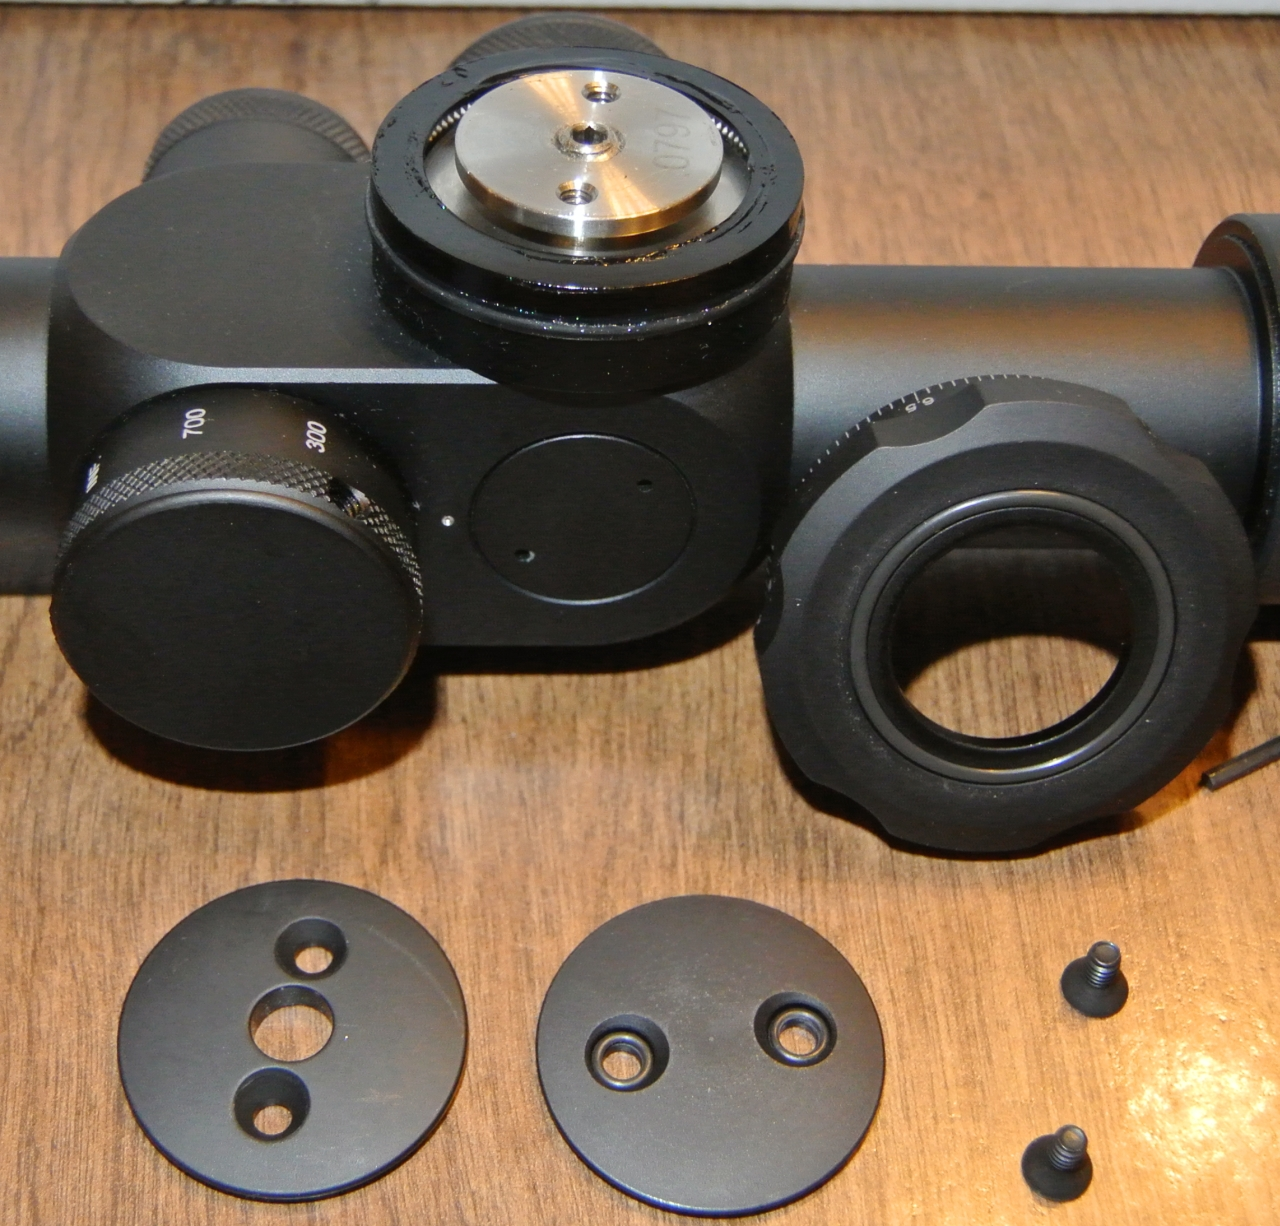 U.S. Optics LR-17 EREK elevation knob with outer sleeve removed.